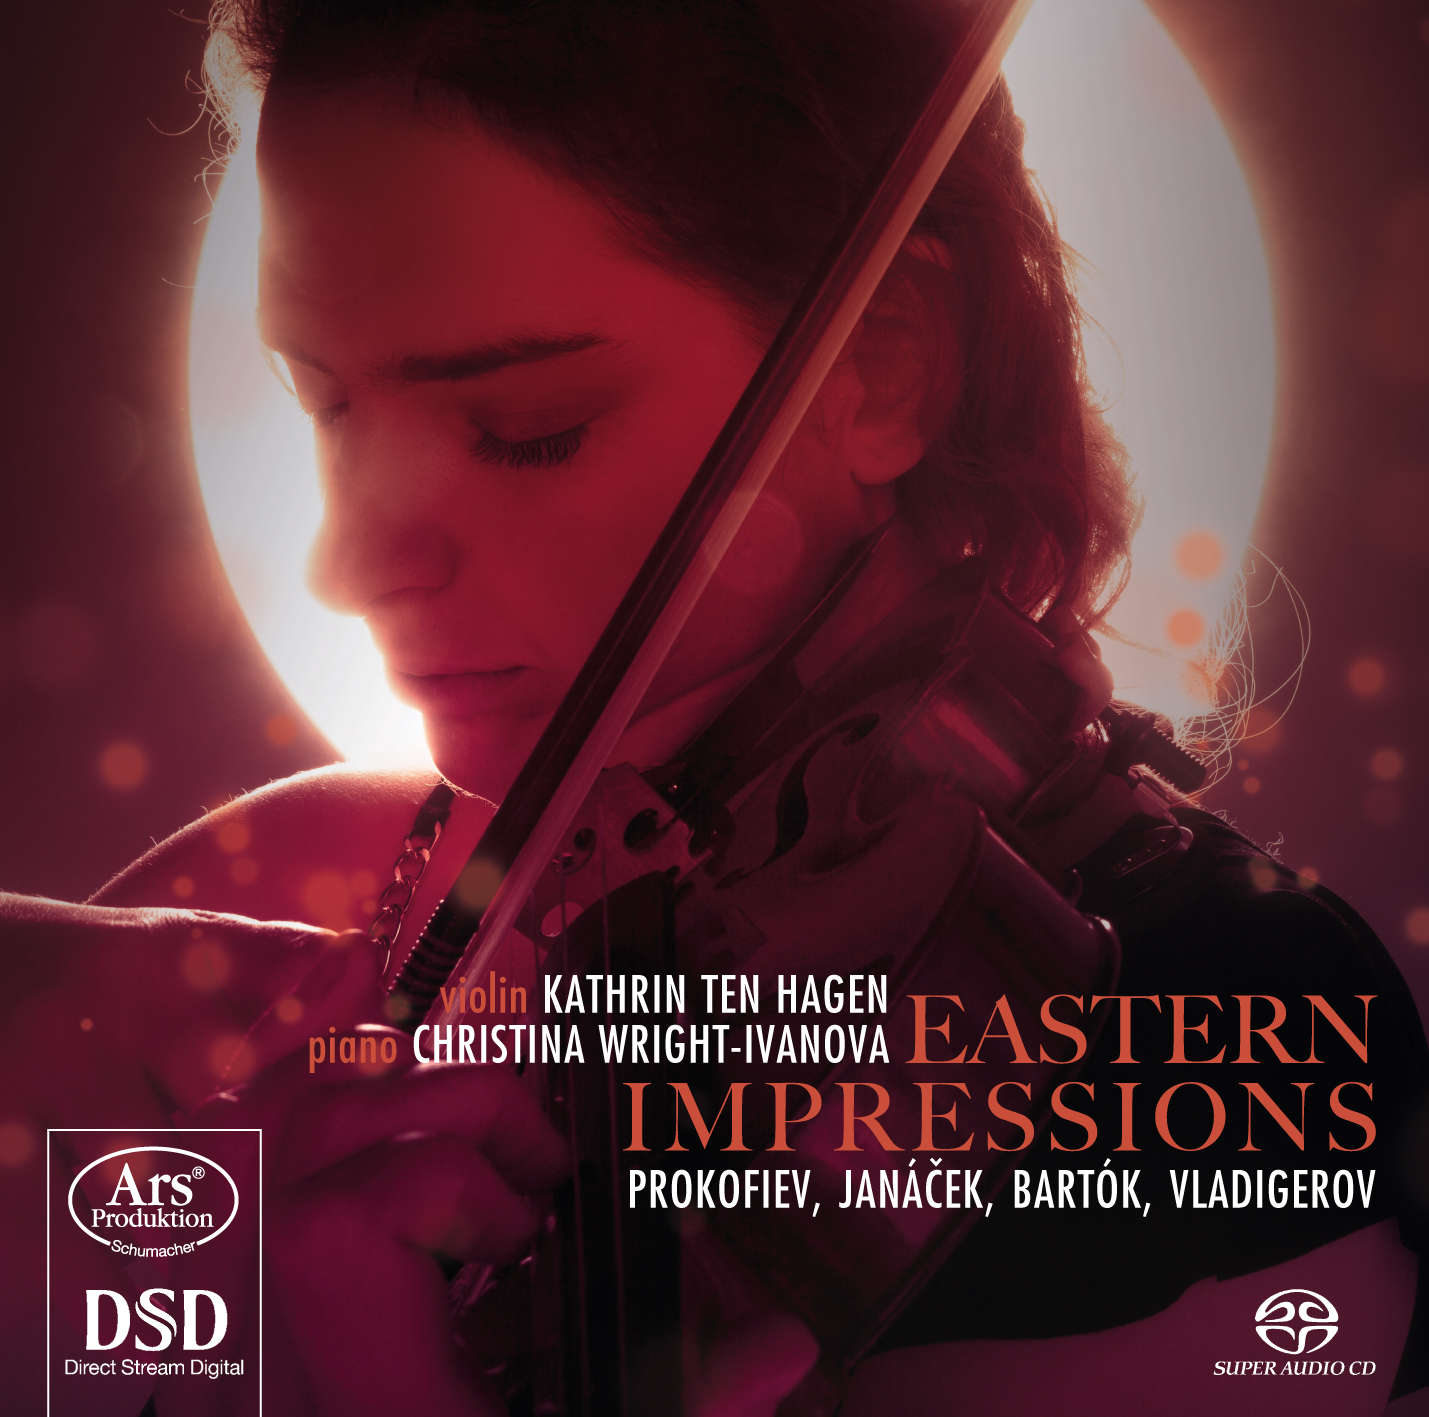 Eastern Impression, Kathrin ten Hagen und Christina Wright-Ivanova